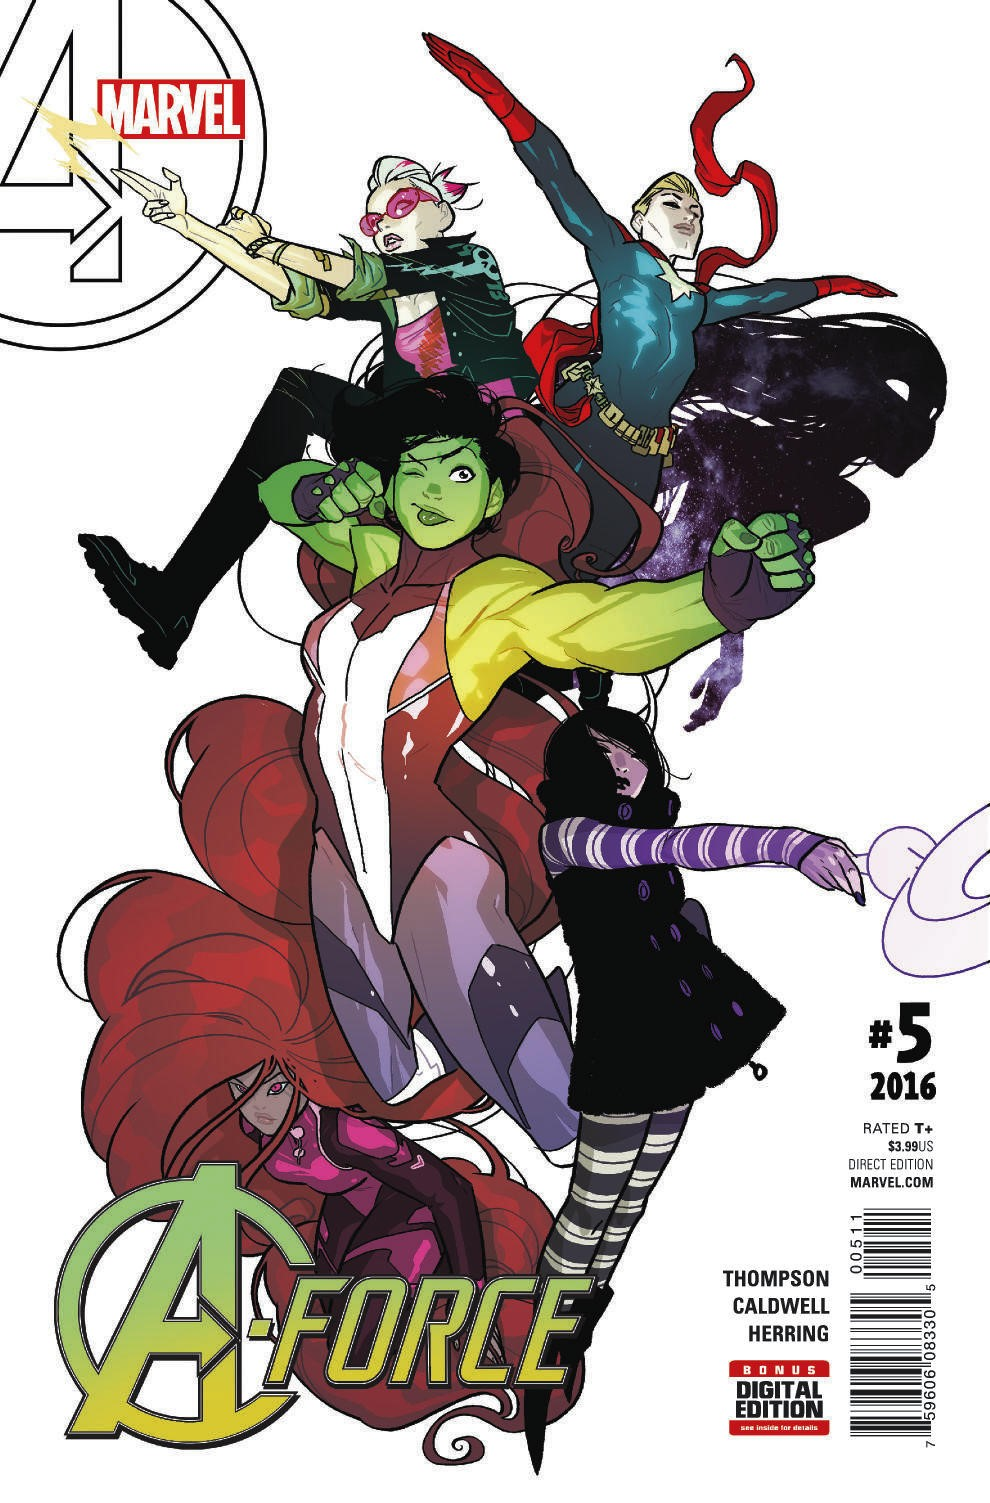 Cover by Ben Caldwell